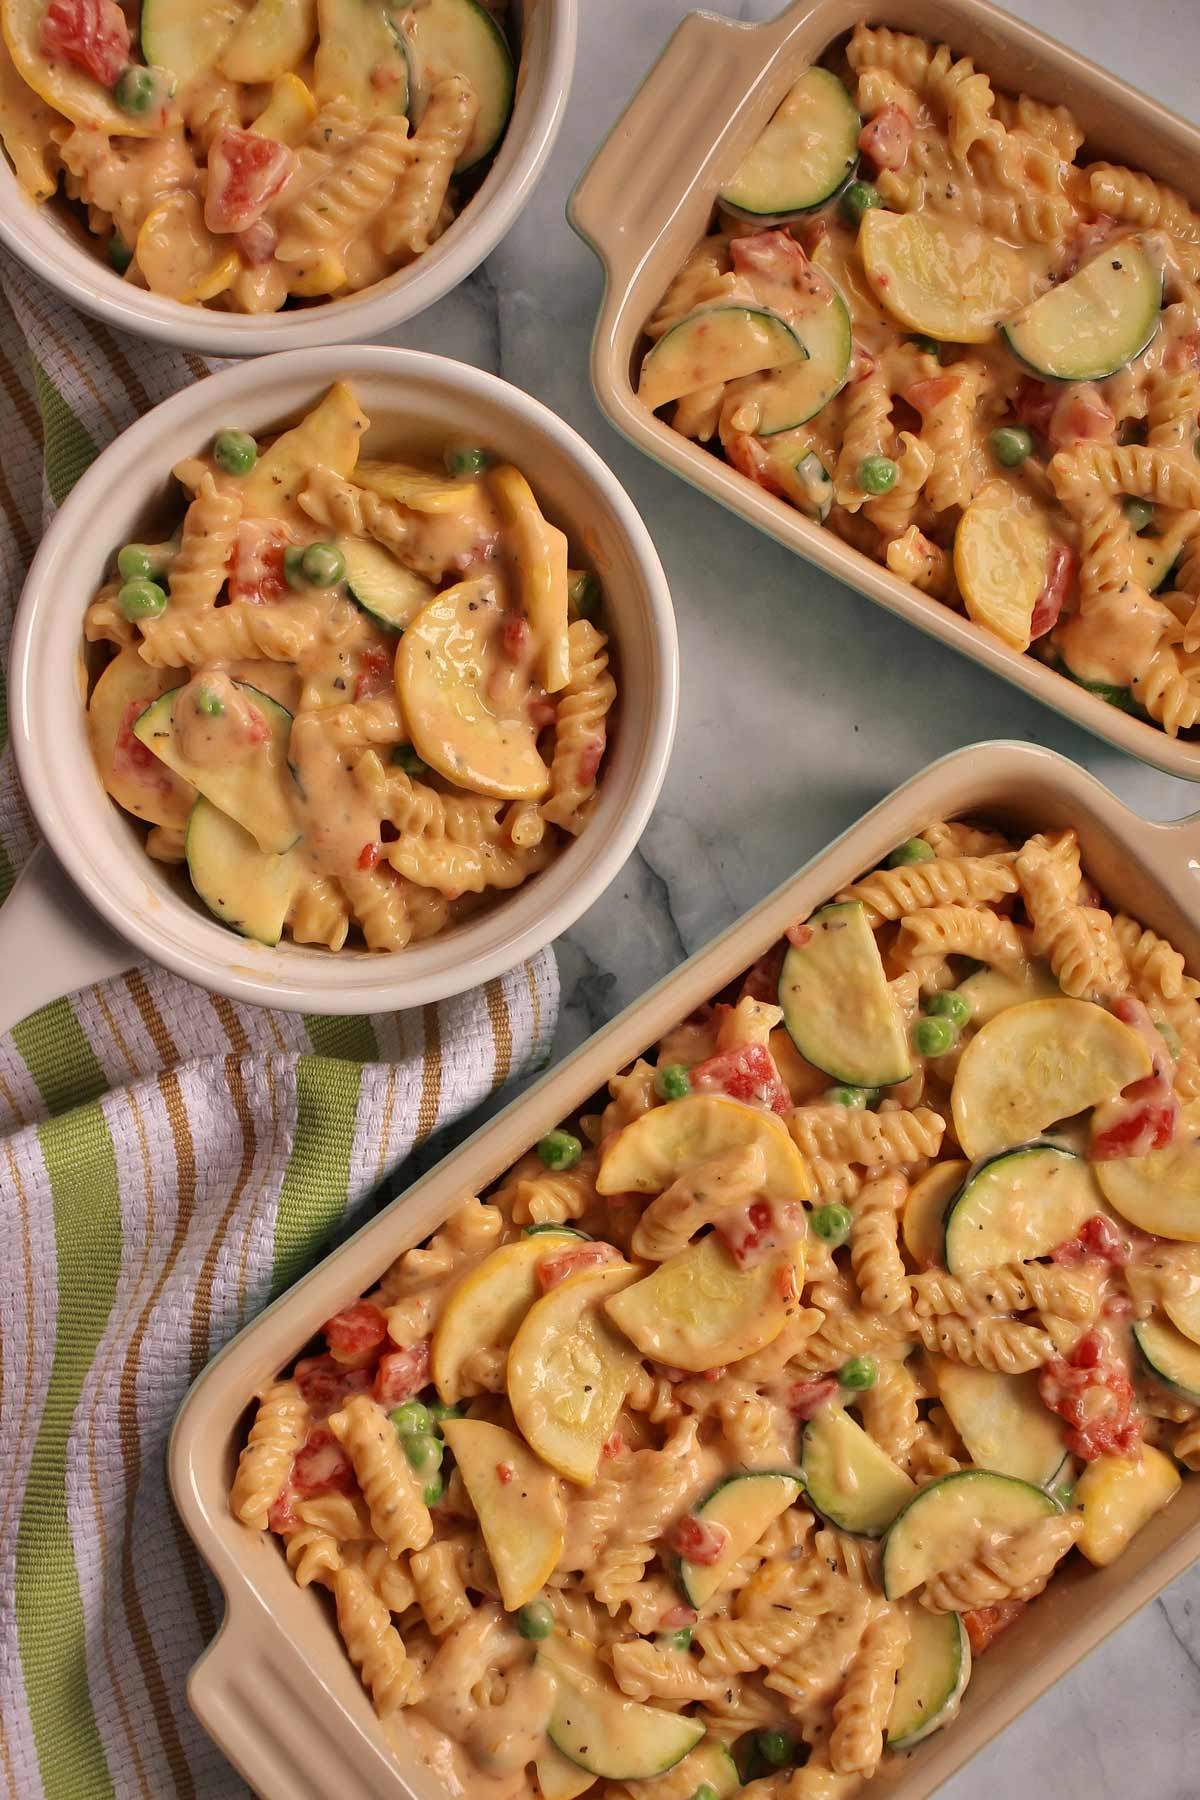 Veggie mac and cheese filled into 4 ceramic containers of various sizes and shapes.